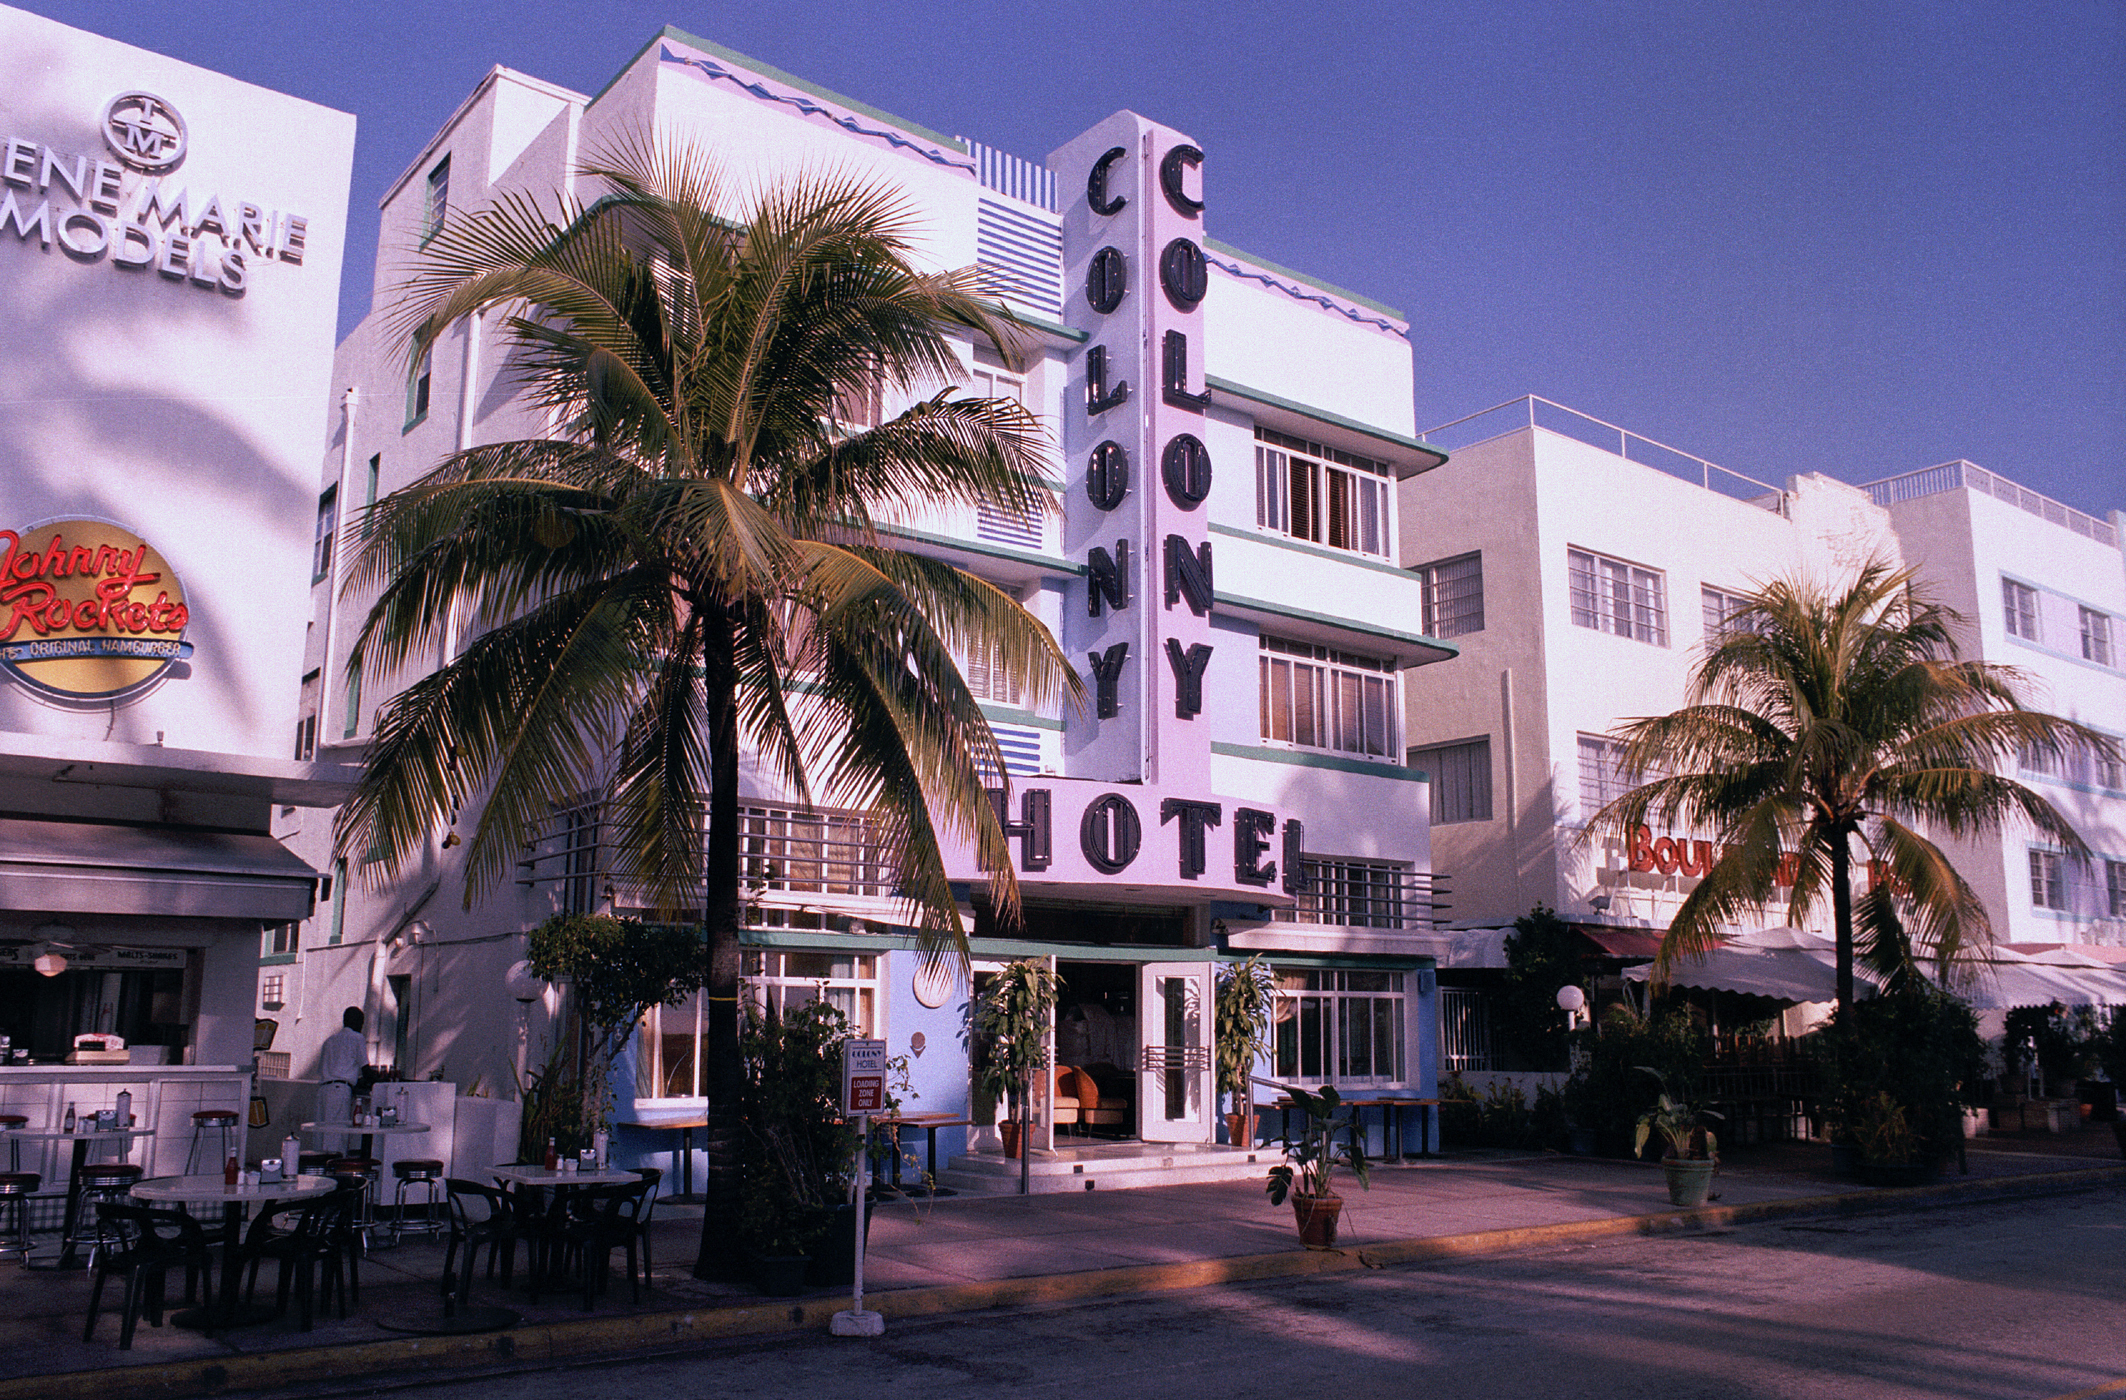 Art Deco District in Miami Source: CC BY-SA 2.0 de, https://commons.wikimedia.org/w/index.php?curid=340480